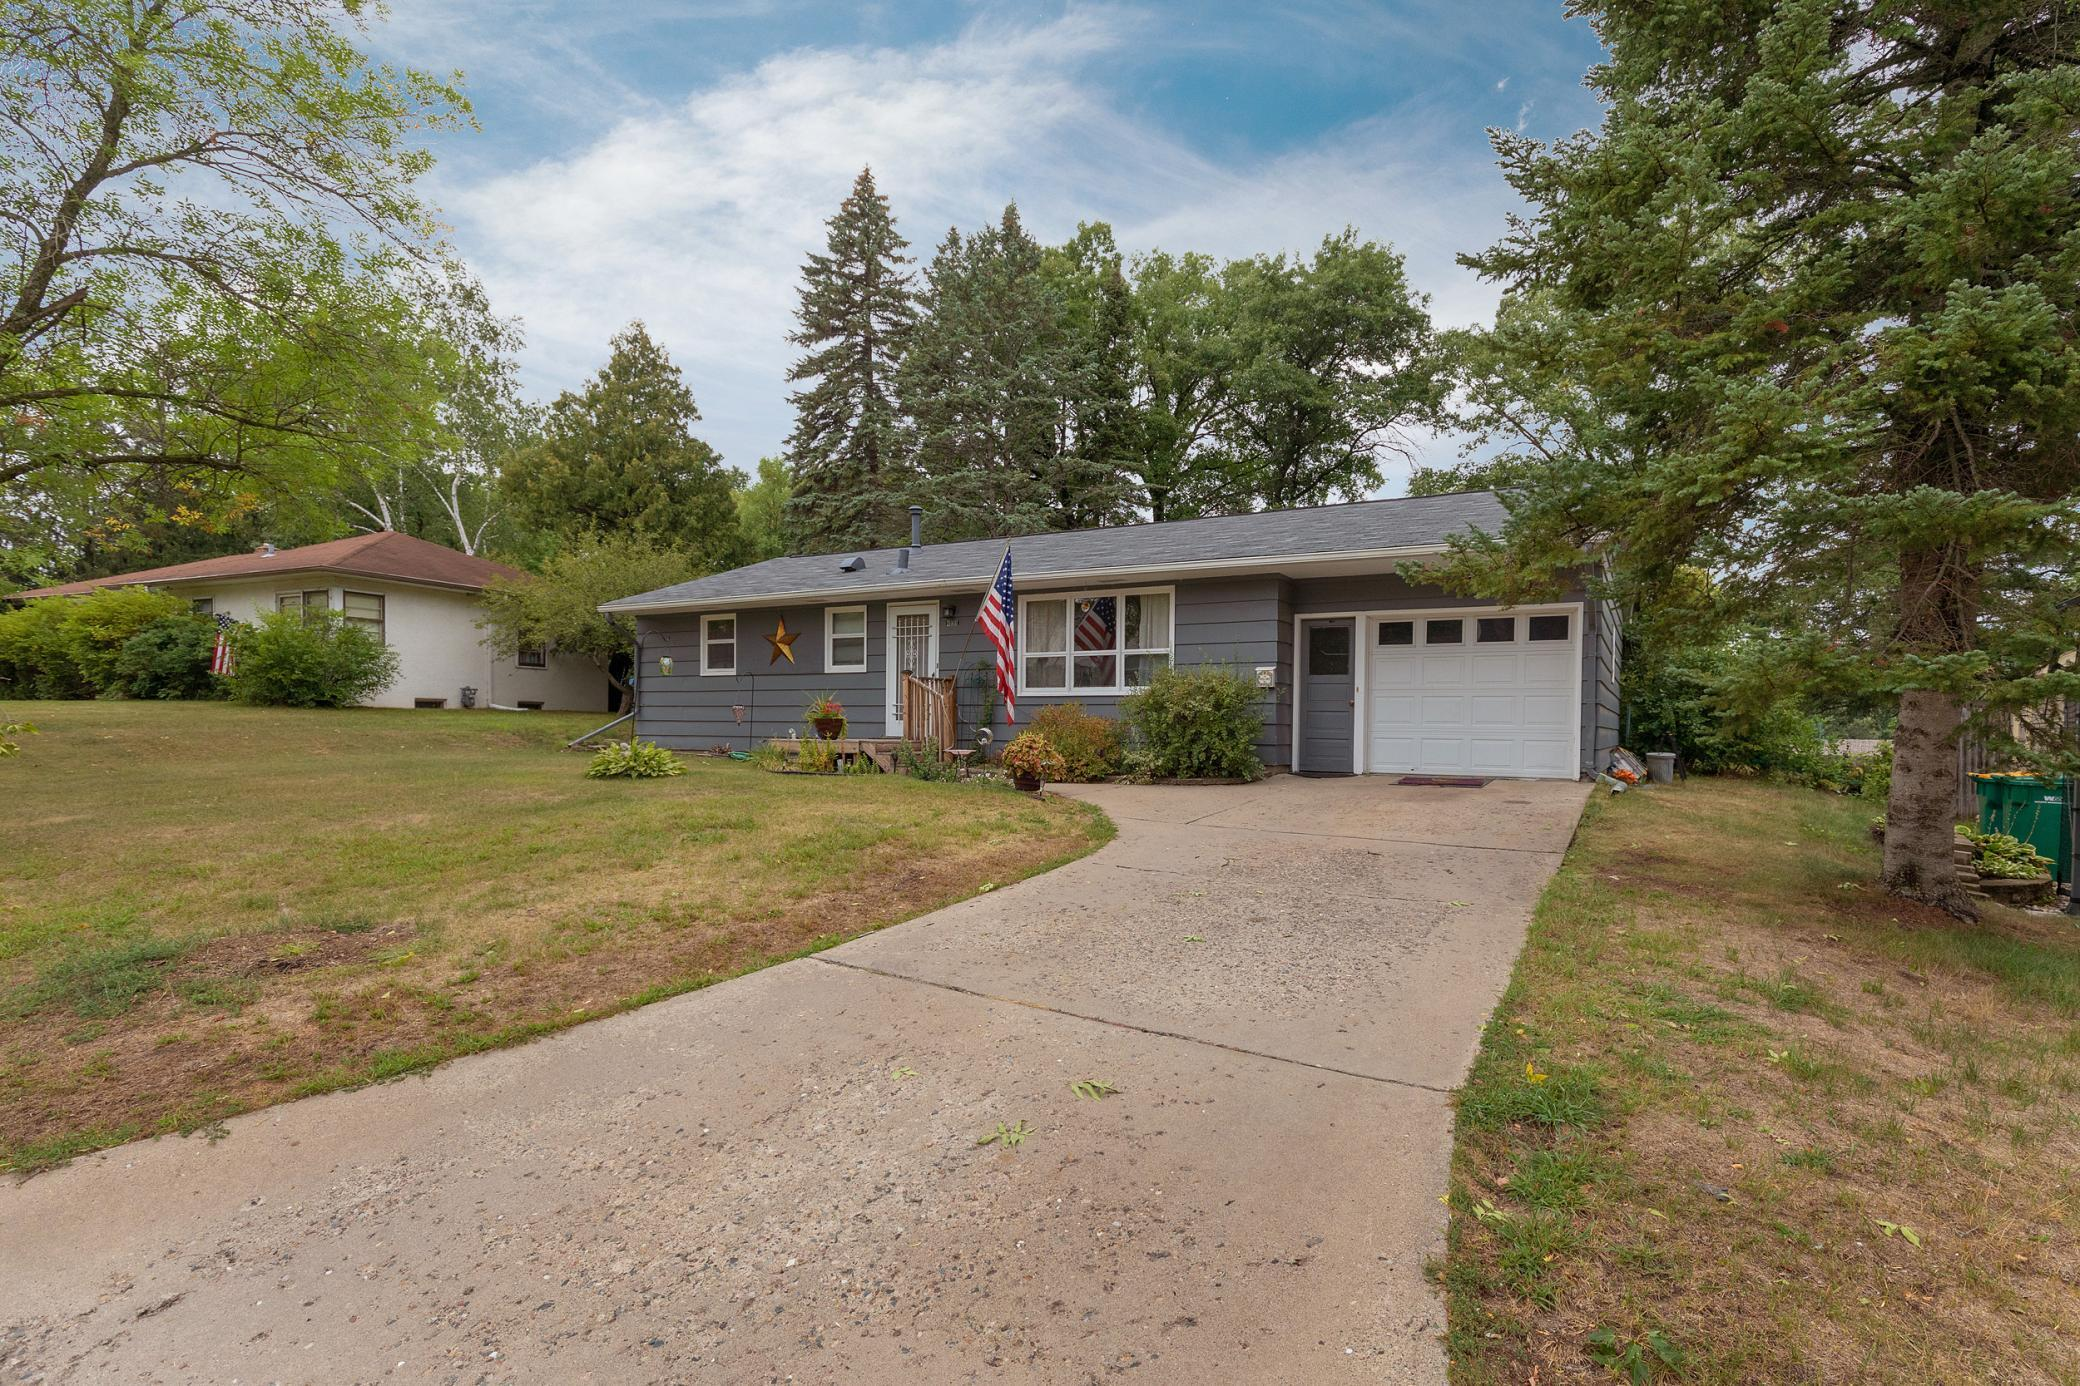 Welcome to this cute 3 bed, 2 bath rambler with a fenced in back yard.  The unfinished basement gives lots of potential for added living space.  Come see it today.